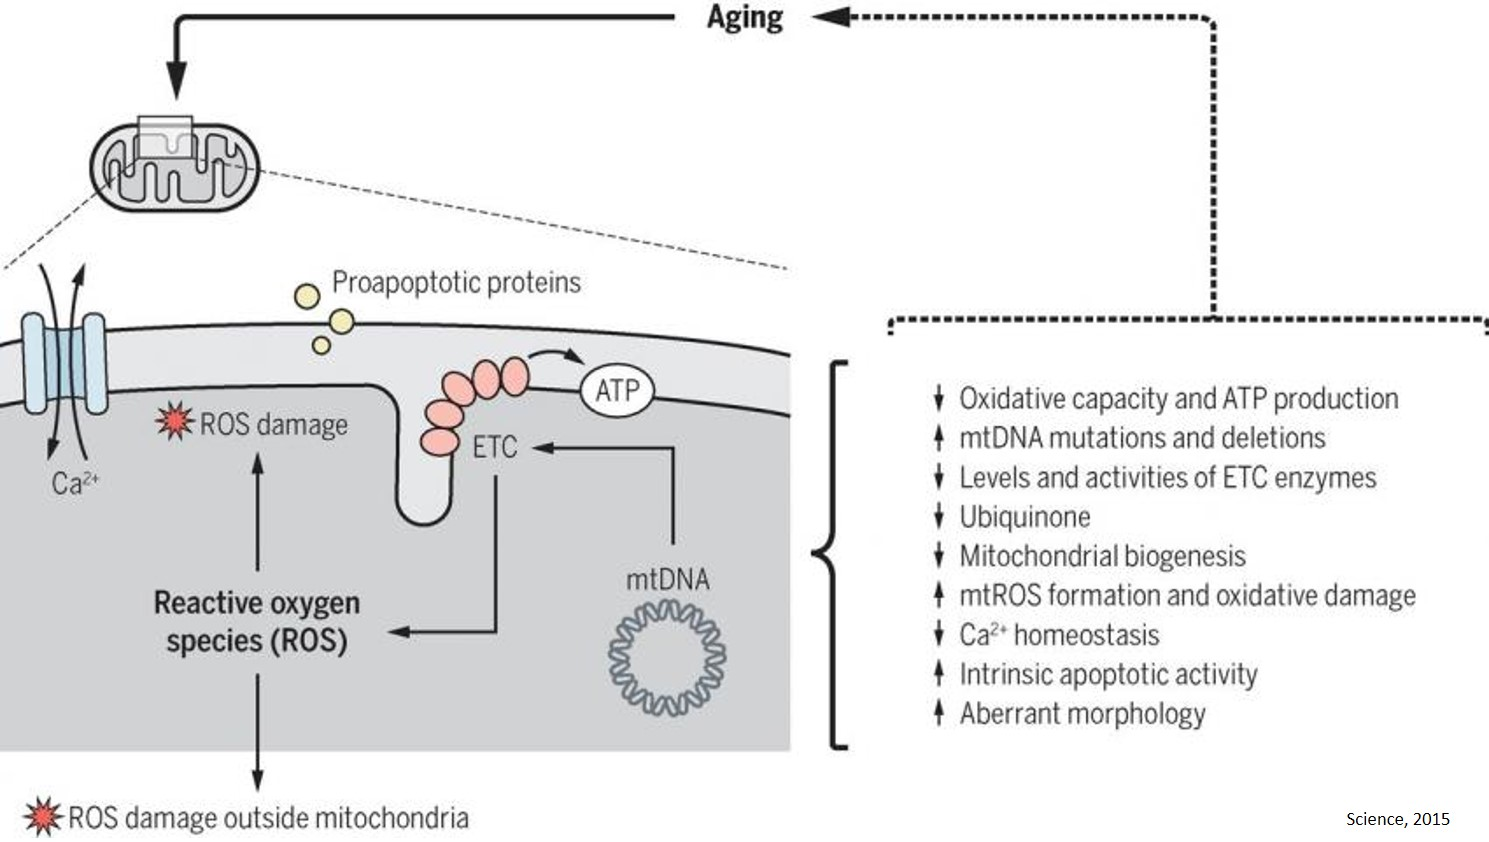 A vitamin that stops the aging process of organs